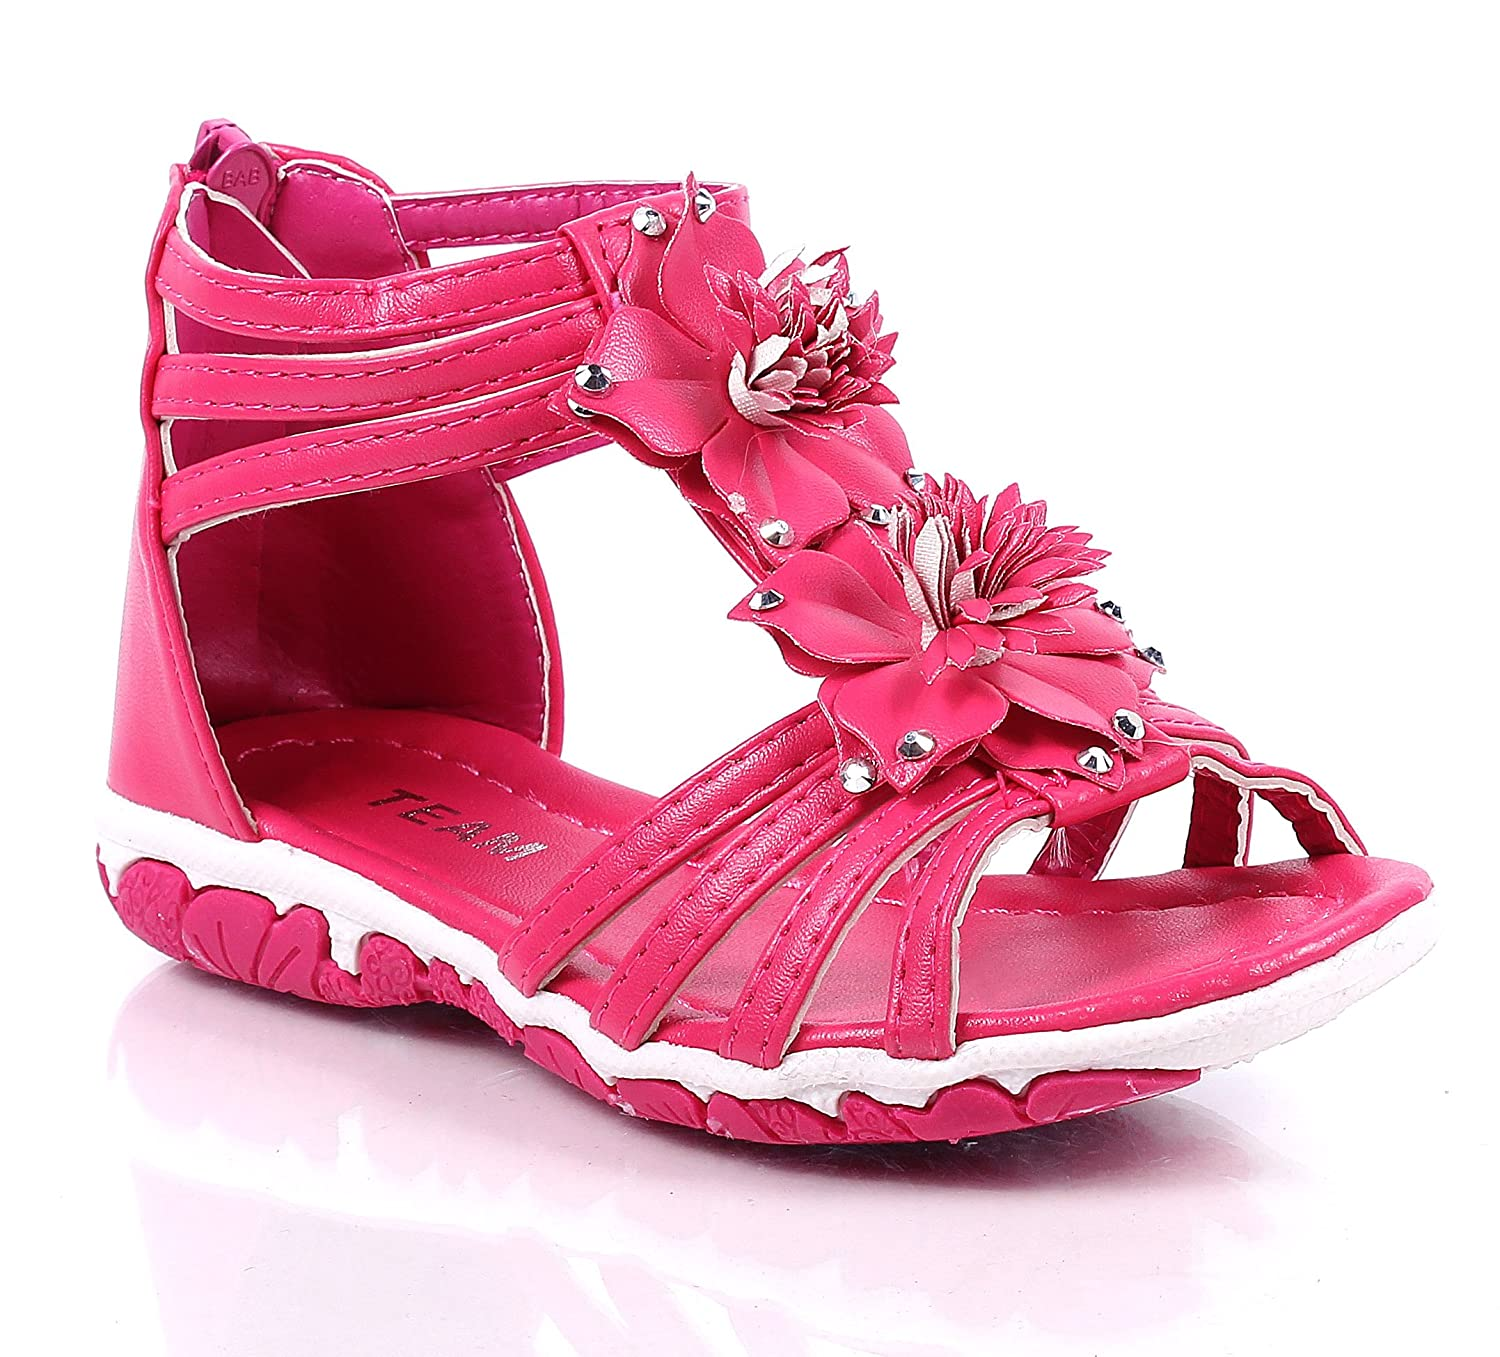 Other Cute Slip on Flowers Back Zip Open Toddlers Casual Kids Girls Flats Infant Sandals New Without Box